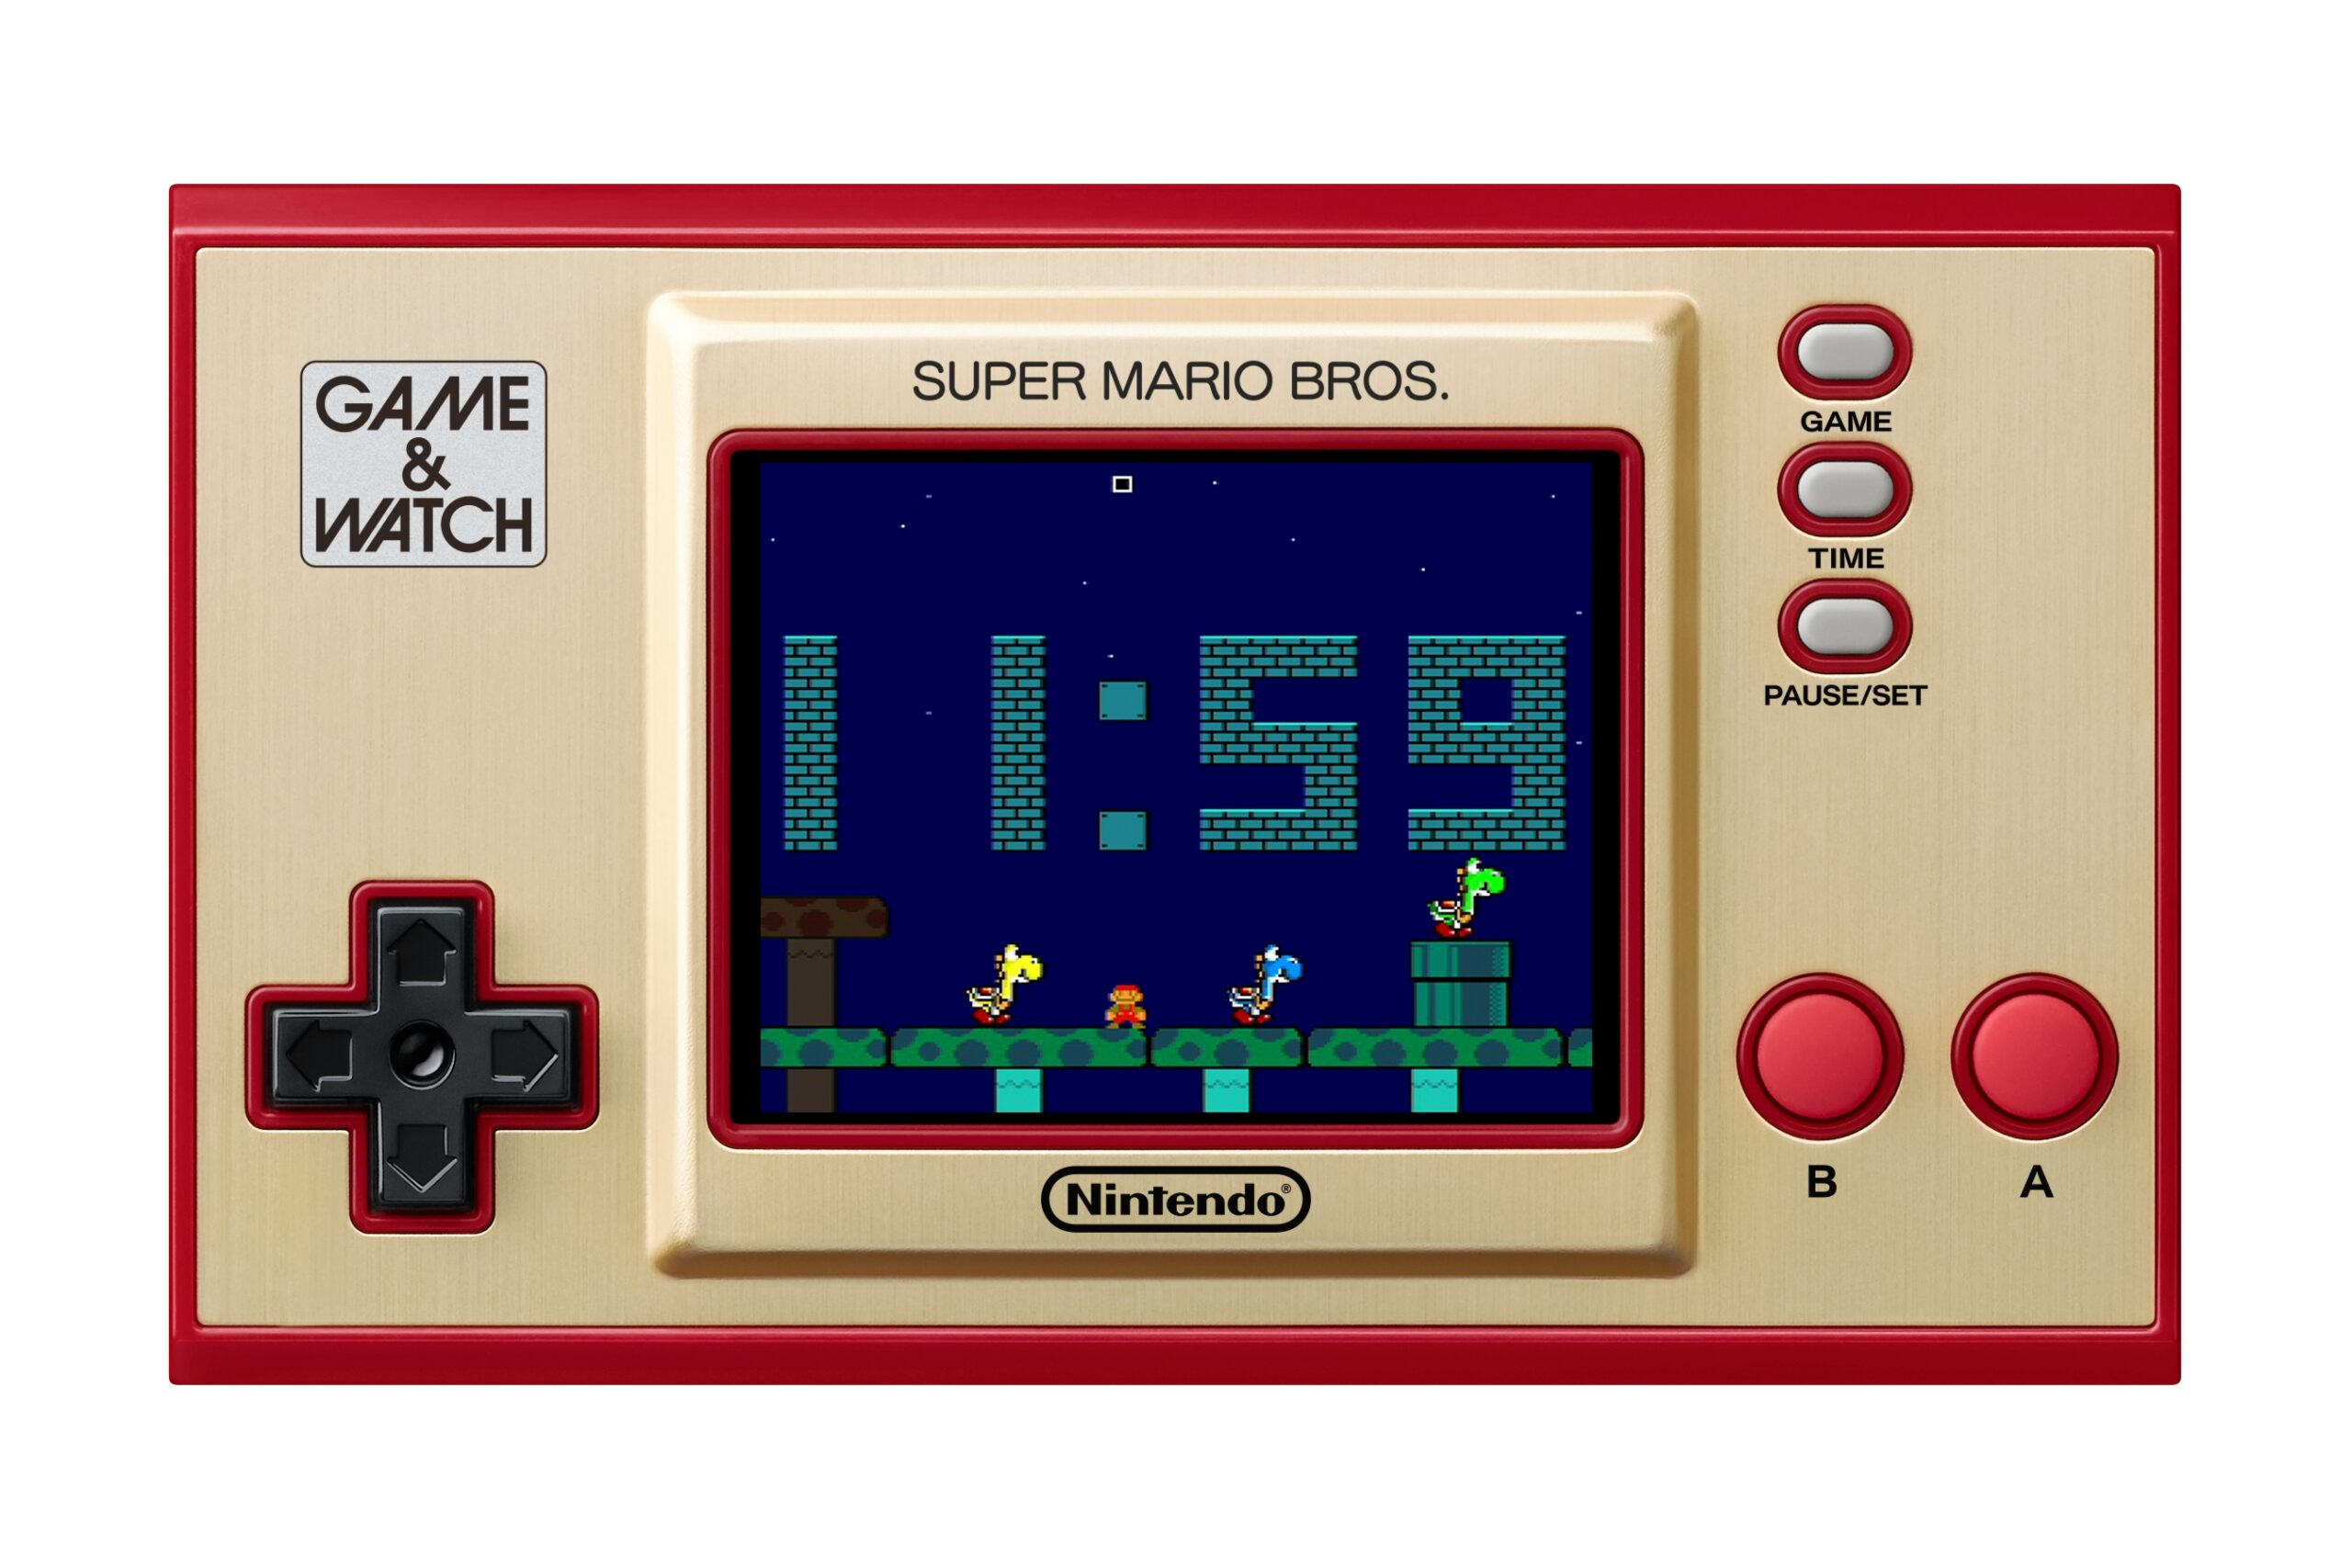 Game-and-Watch-Super-Mario-Bros_2020_09-03-20_002